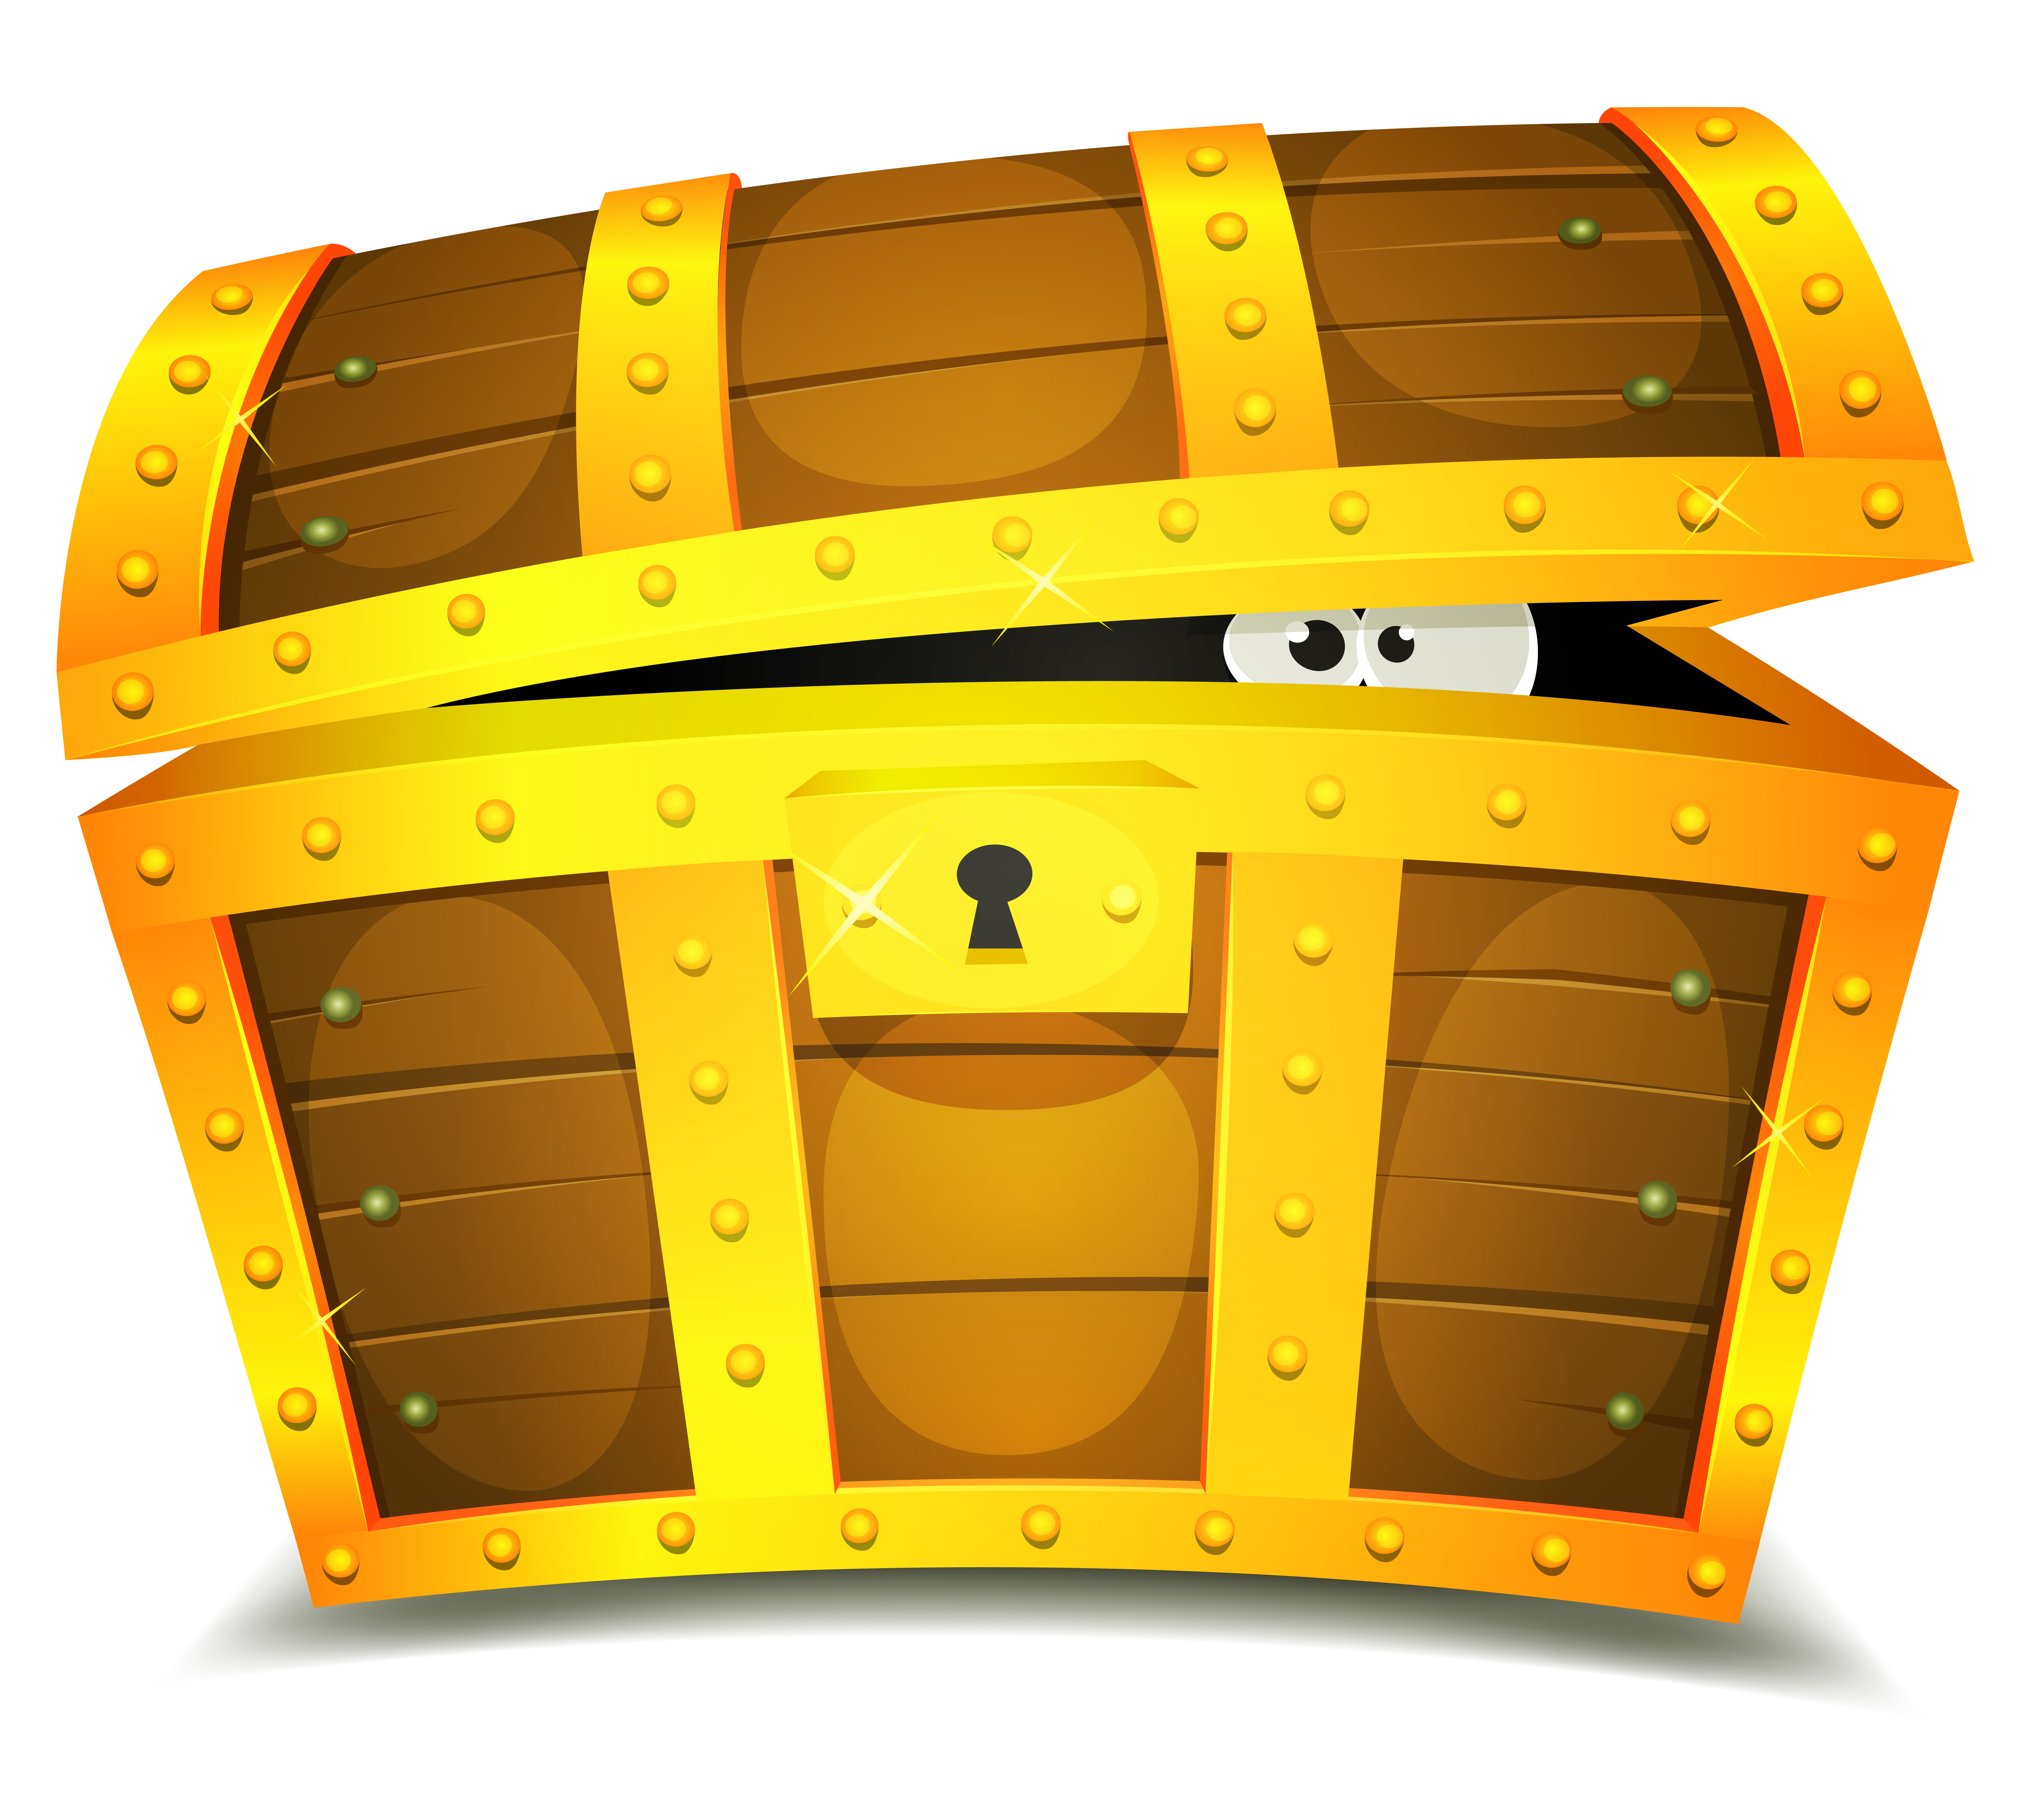 Hiding Inside Treasure Chest Download Free Vector Art